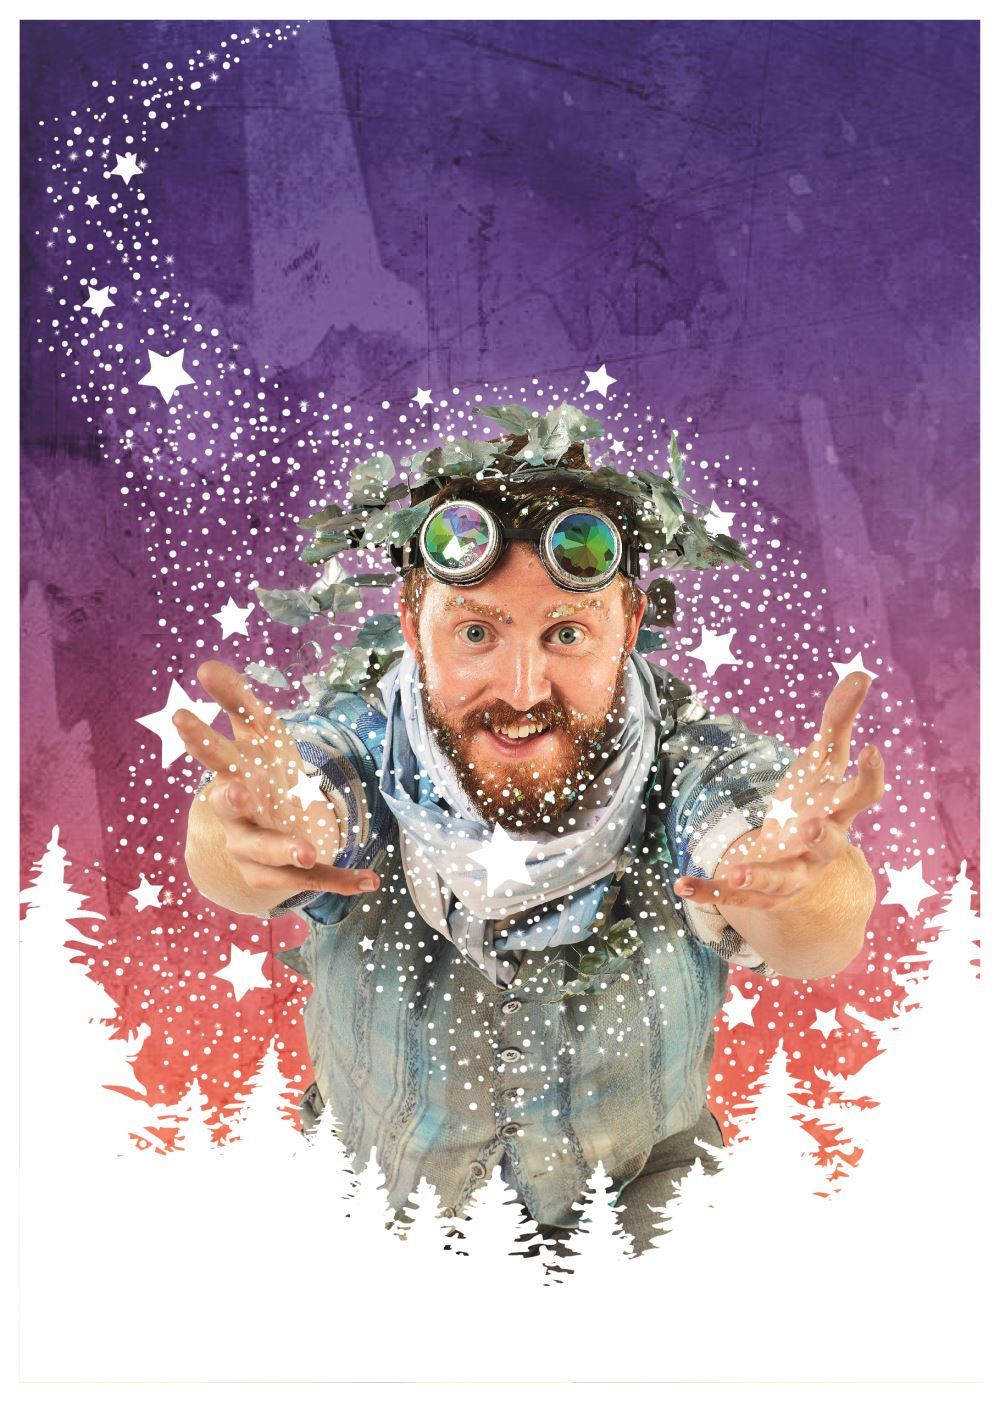 Jack Frost, A joyful Christmas Adventure 19/12 @ Otley Courthouse